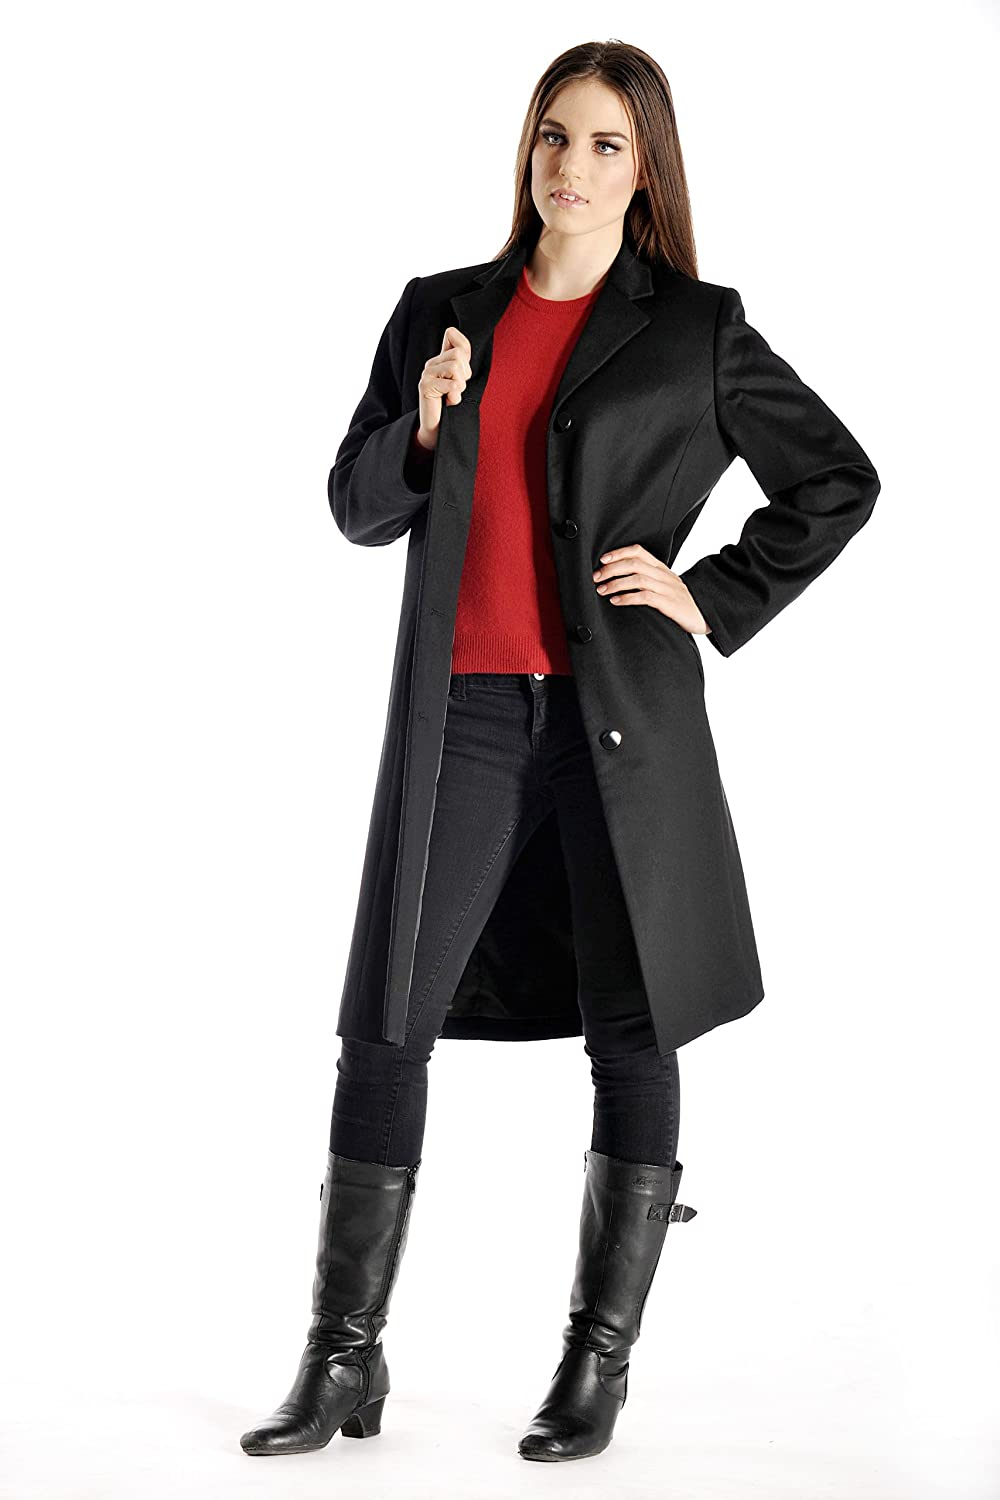 Amazon.com: Women's Full Length Overcoat in Pure Cashmere: Clothing